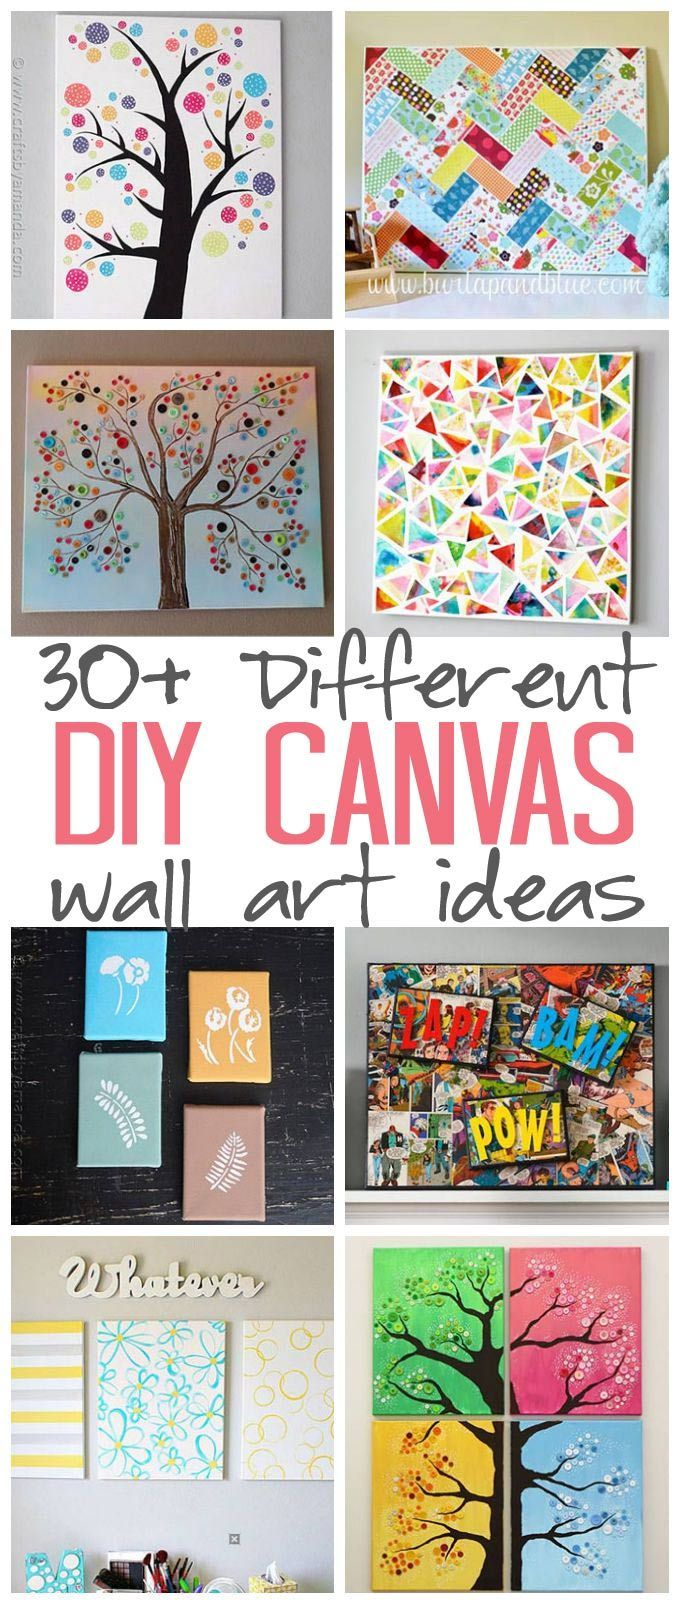 Diy canvas wall art ideas diy canvas nursery and canvases